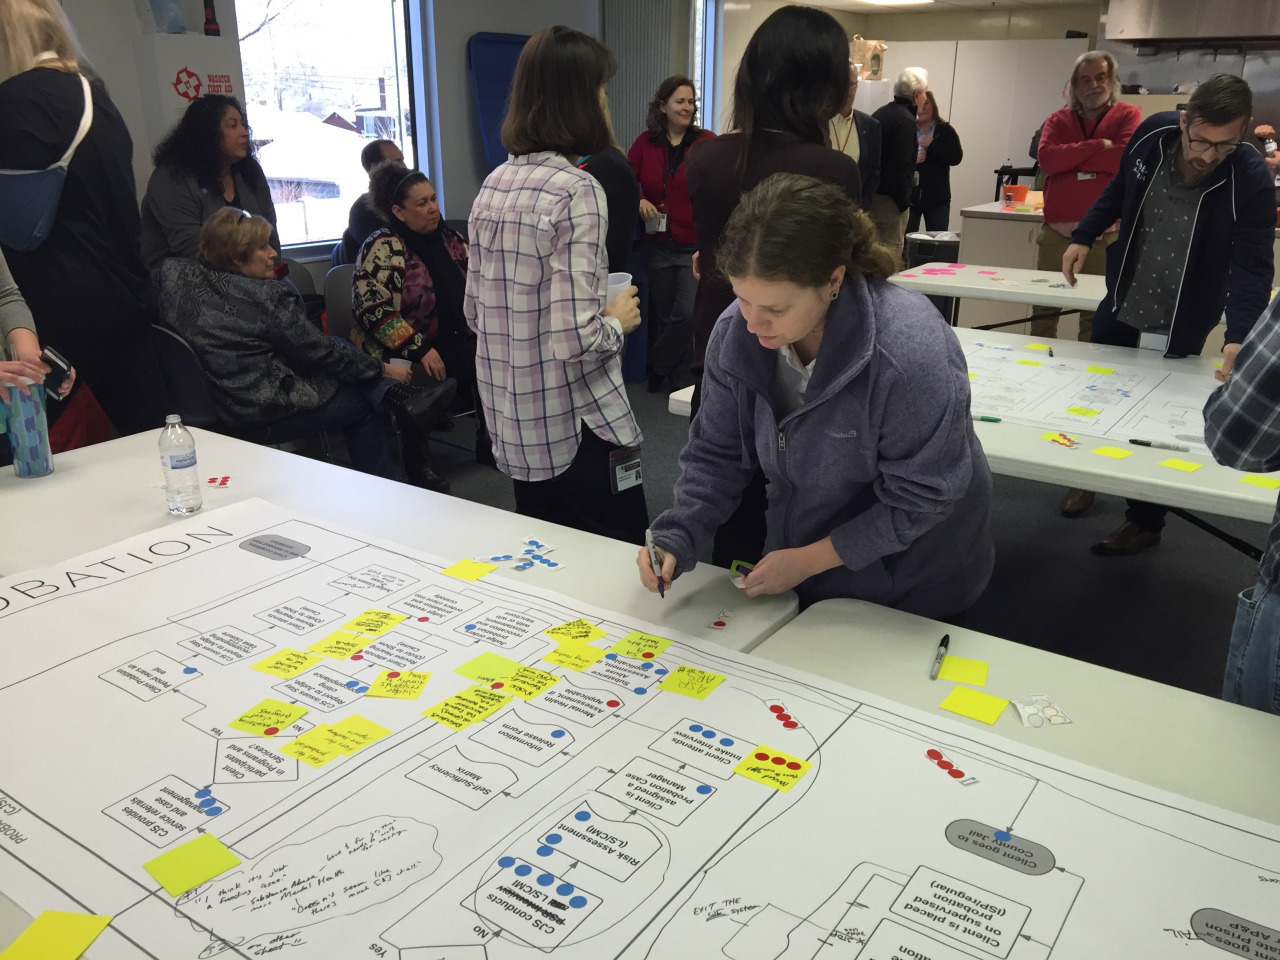 <p>Ben Peterson, 2016 Code for America Fellow with Team Salt Lake County works with a Criminal Justice System (CJS) case manager as they document observed opportunity points within CJS at a system brainstorming workshop.</p>